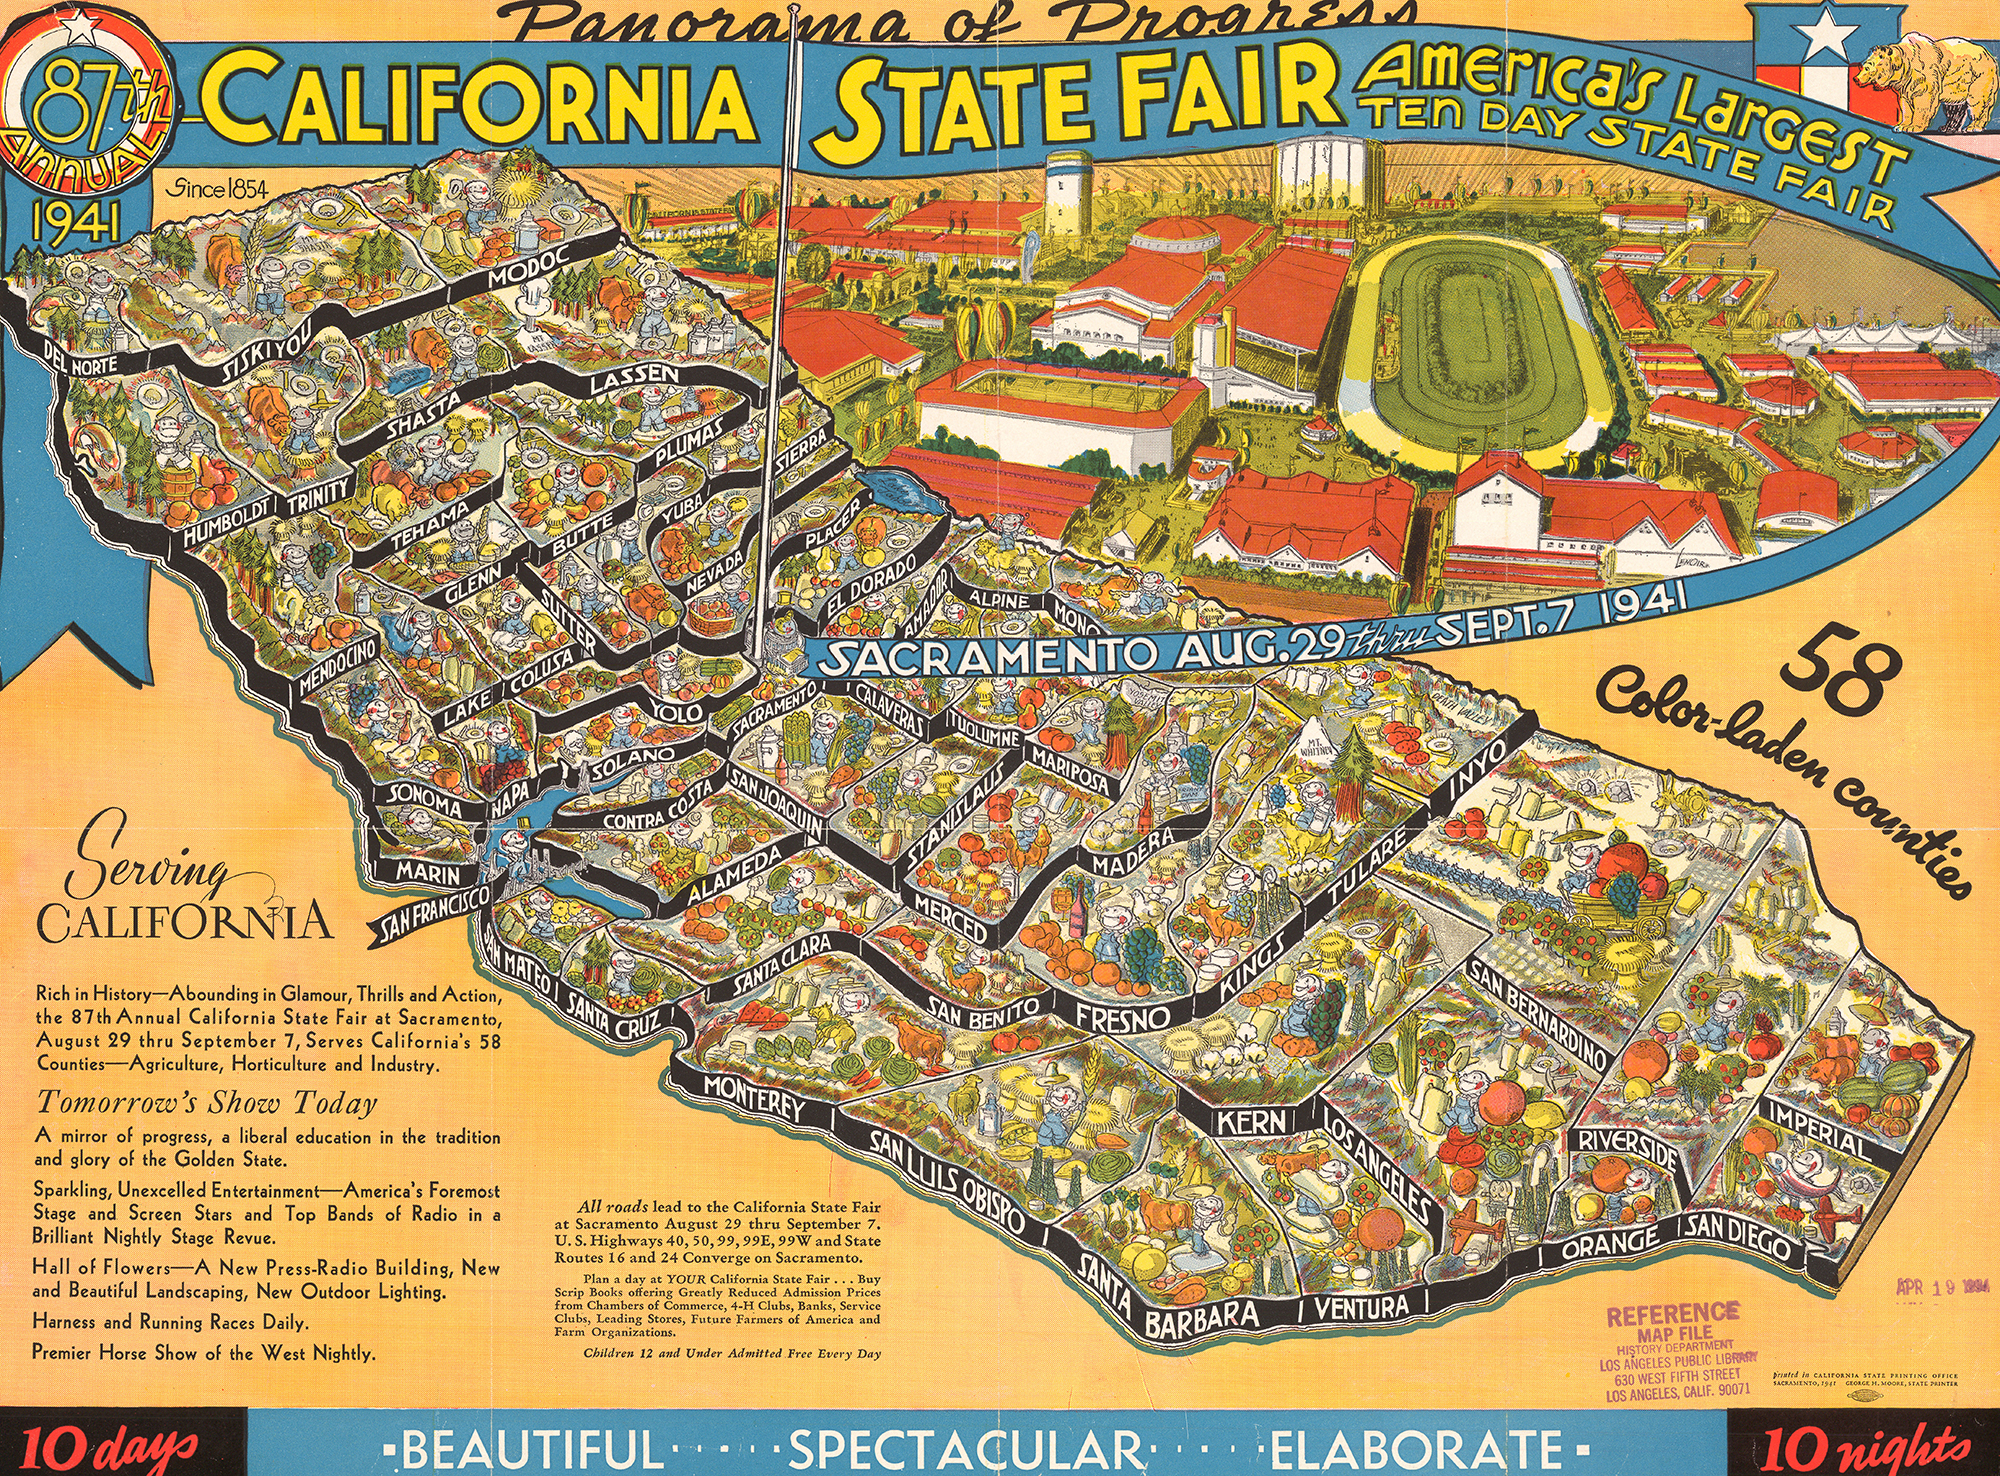 CityDig This 1941 Map Shows f the California State Fair s